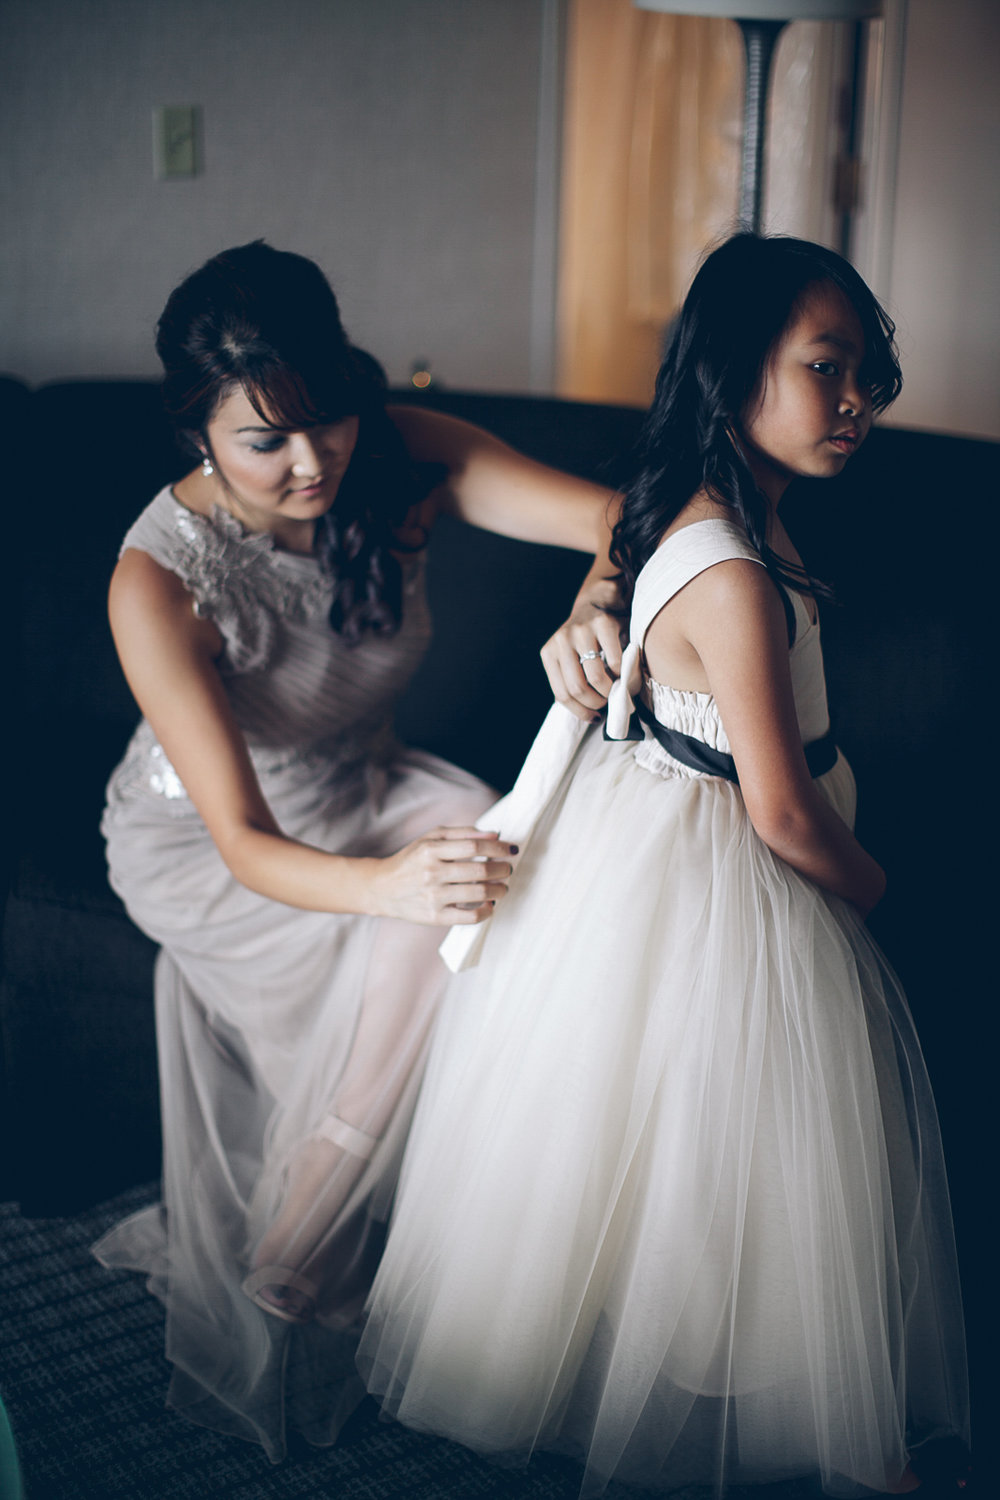 kohl_mansion_wedding_photography_samantha_gene_ebony_siovhan_bokeh_photography_009.jpg